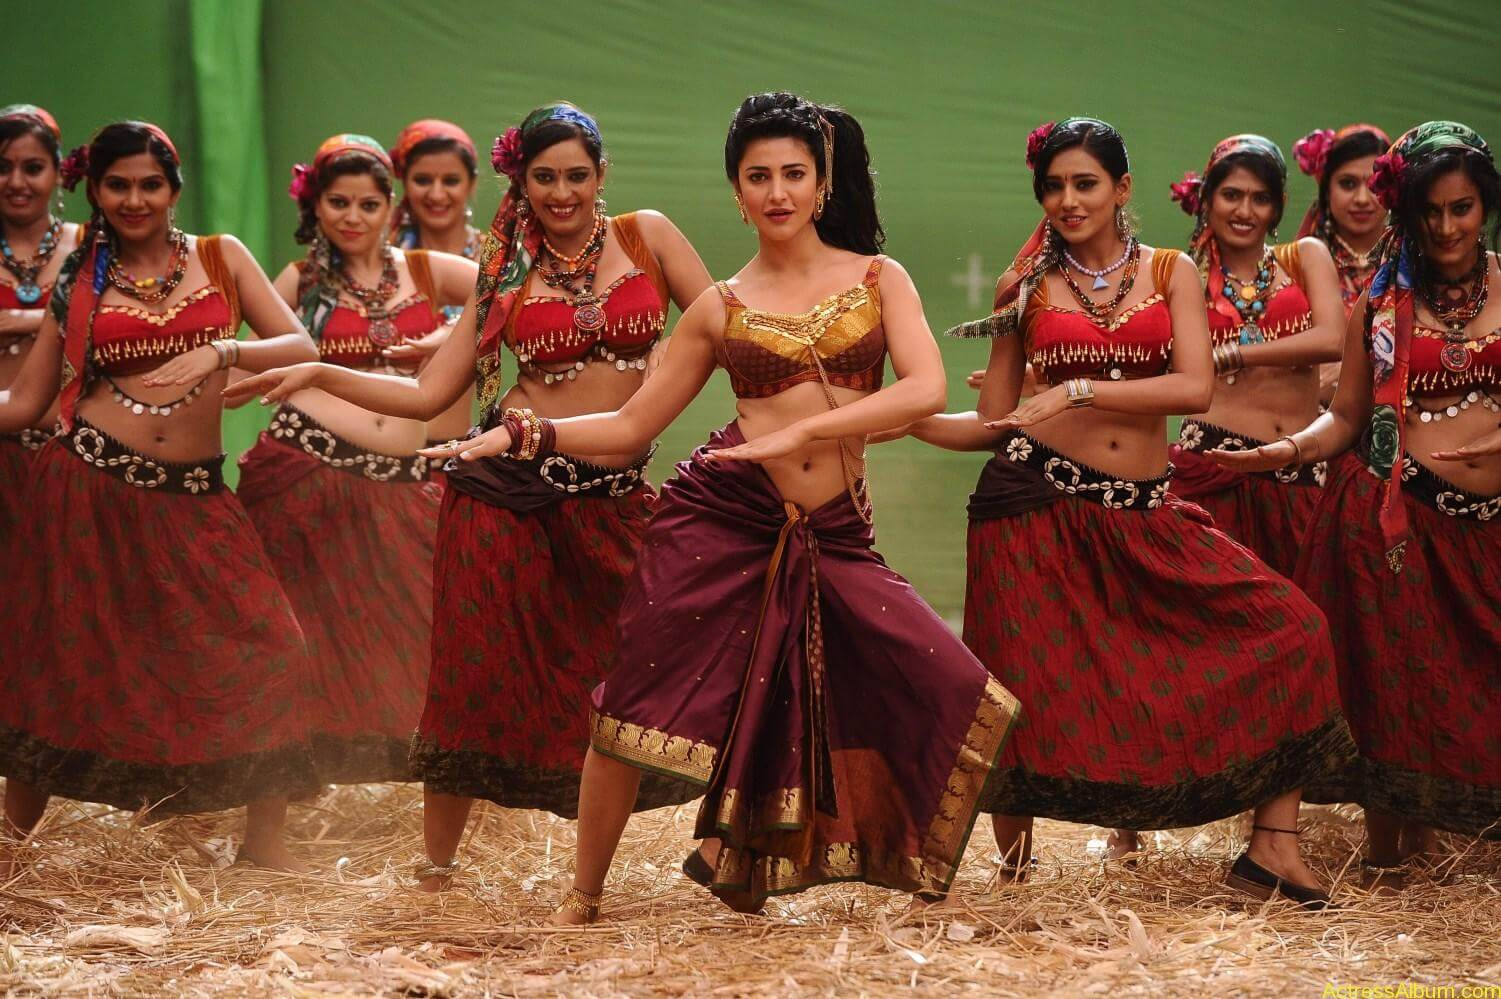 Mahesh-Babu-Shruthi-Haasan-Srimanthudu-Movie-Stills-20